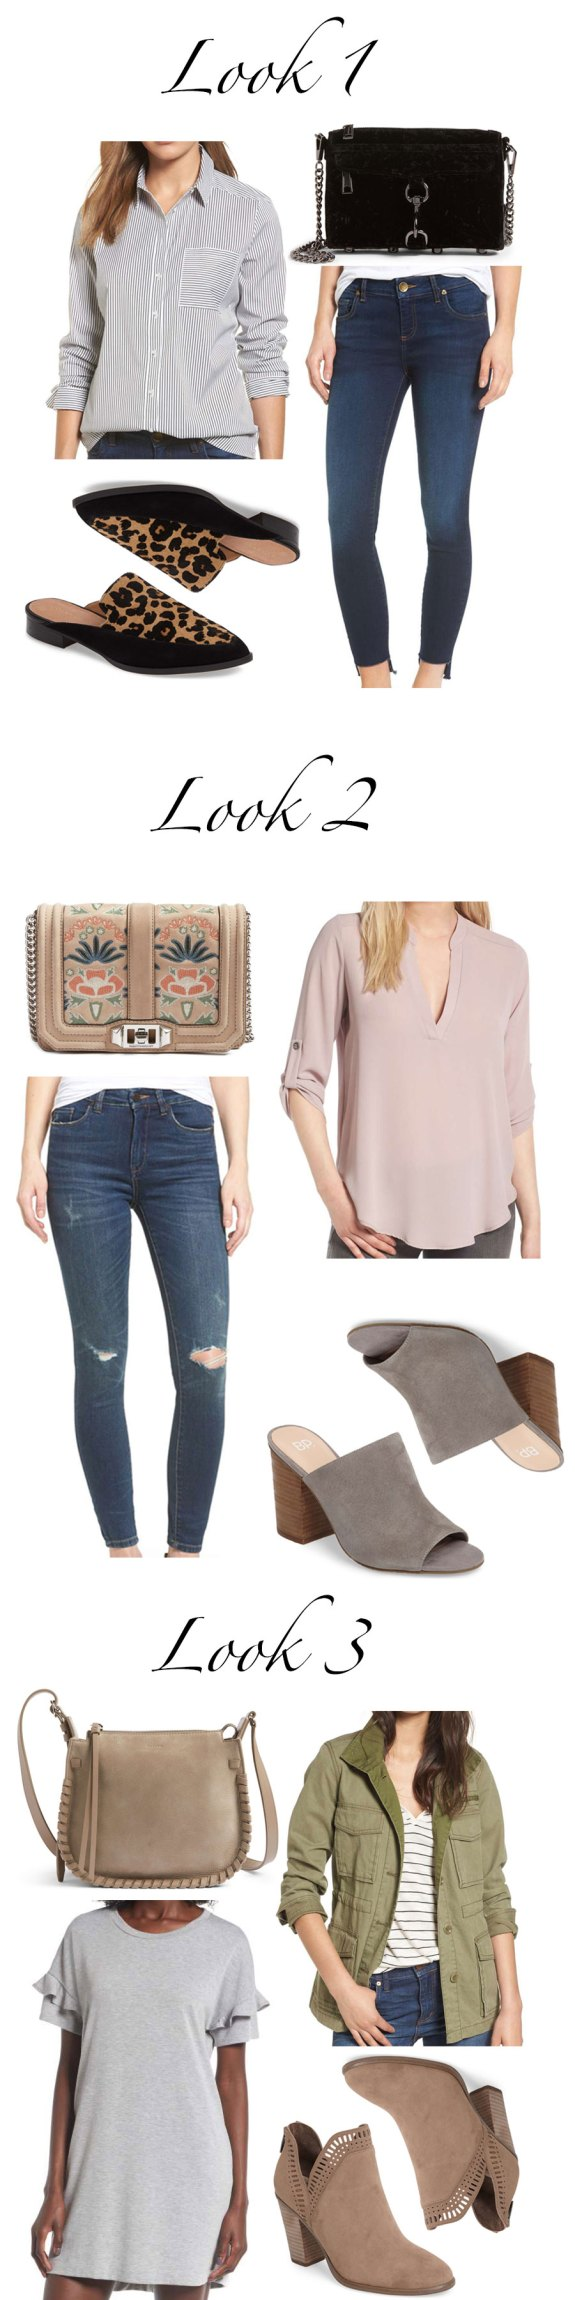 outfits with nordstrom anniversary sale items